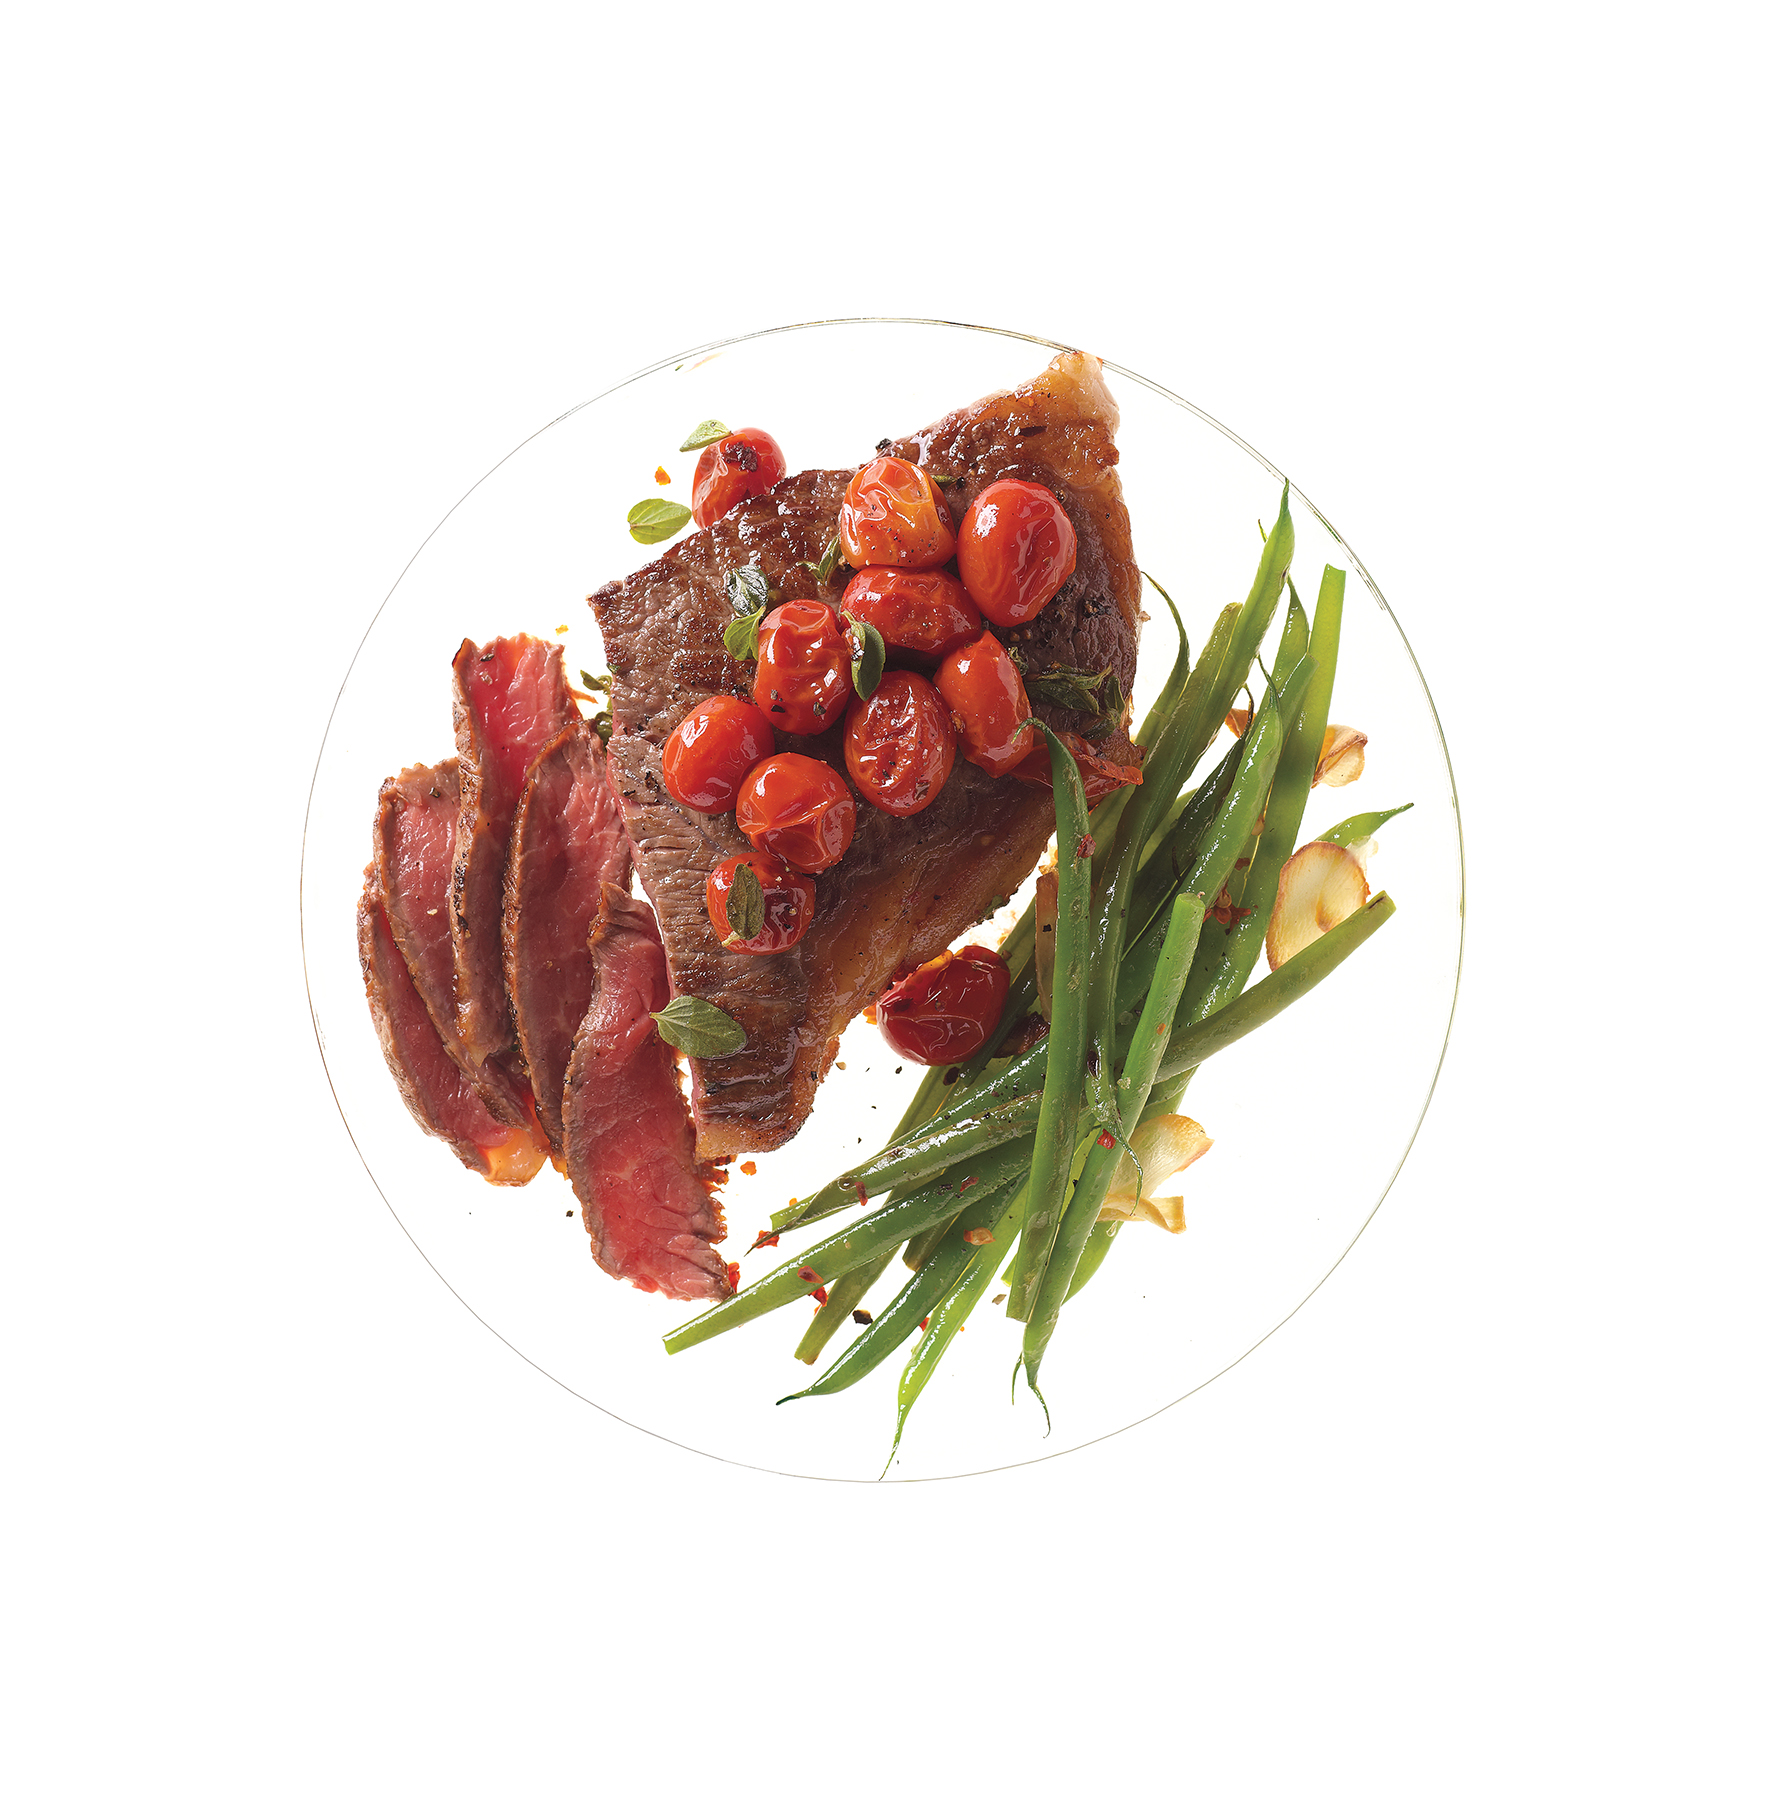 Steak With Skillet Tomatoes and Spicy Sautéed Green Beans